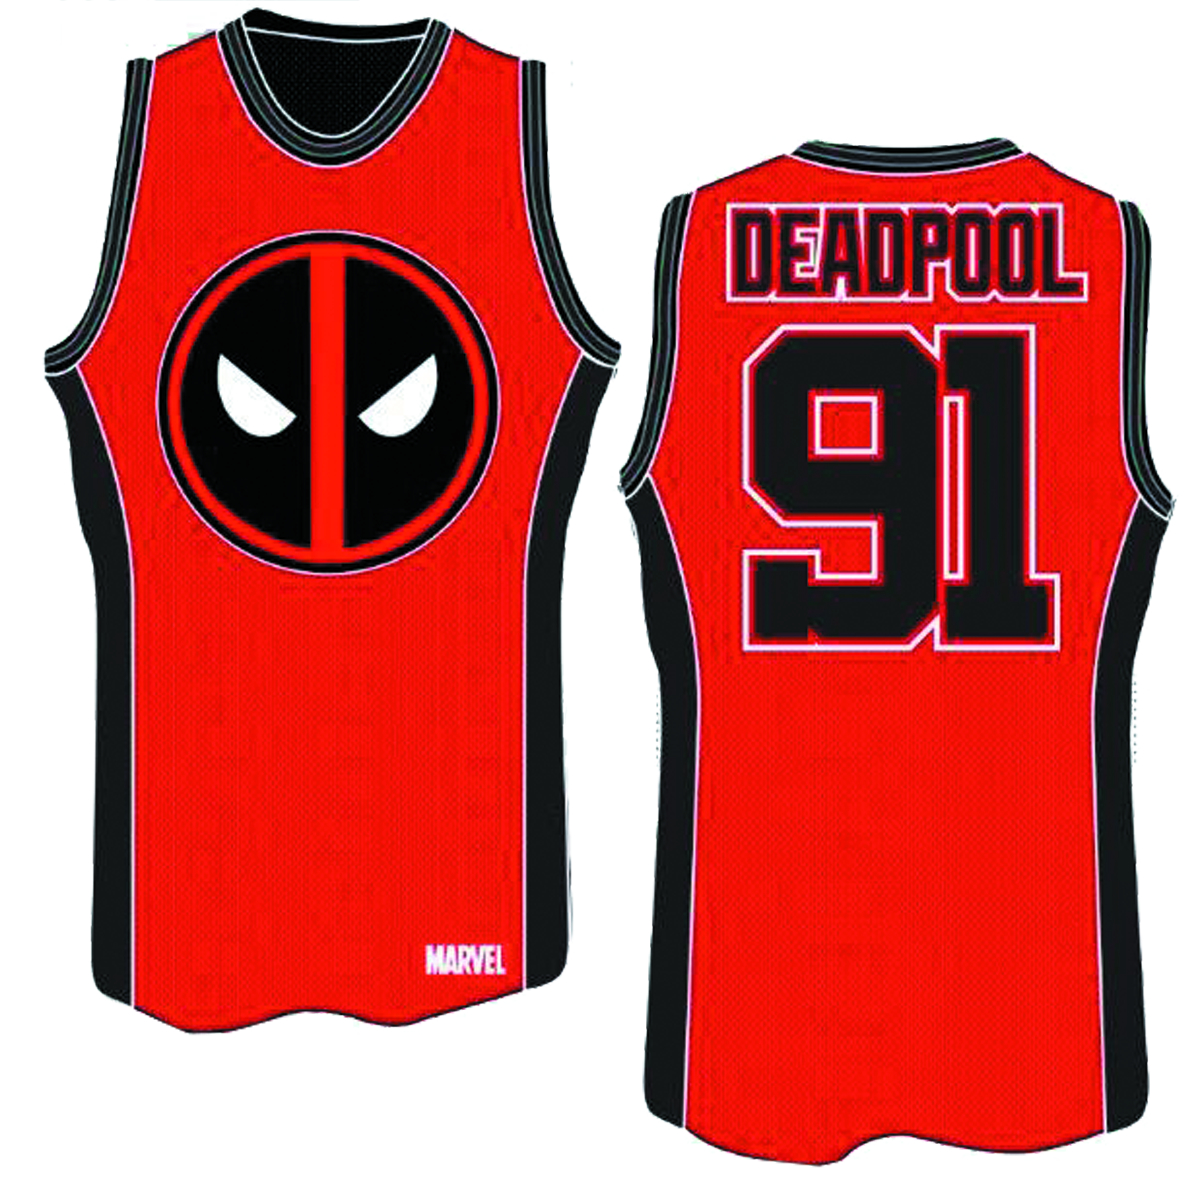 DEADPOOL WADE BASKETBALL JERSEY SM